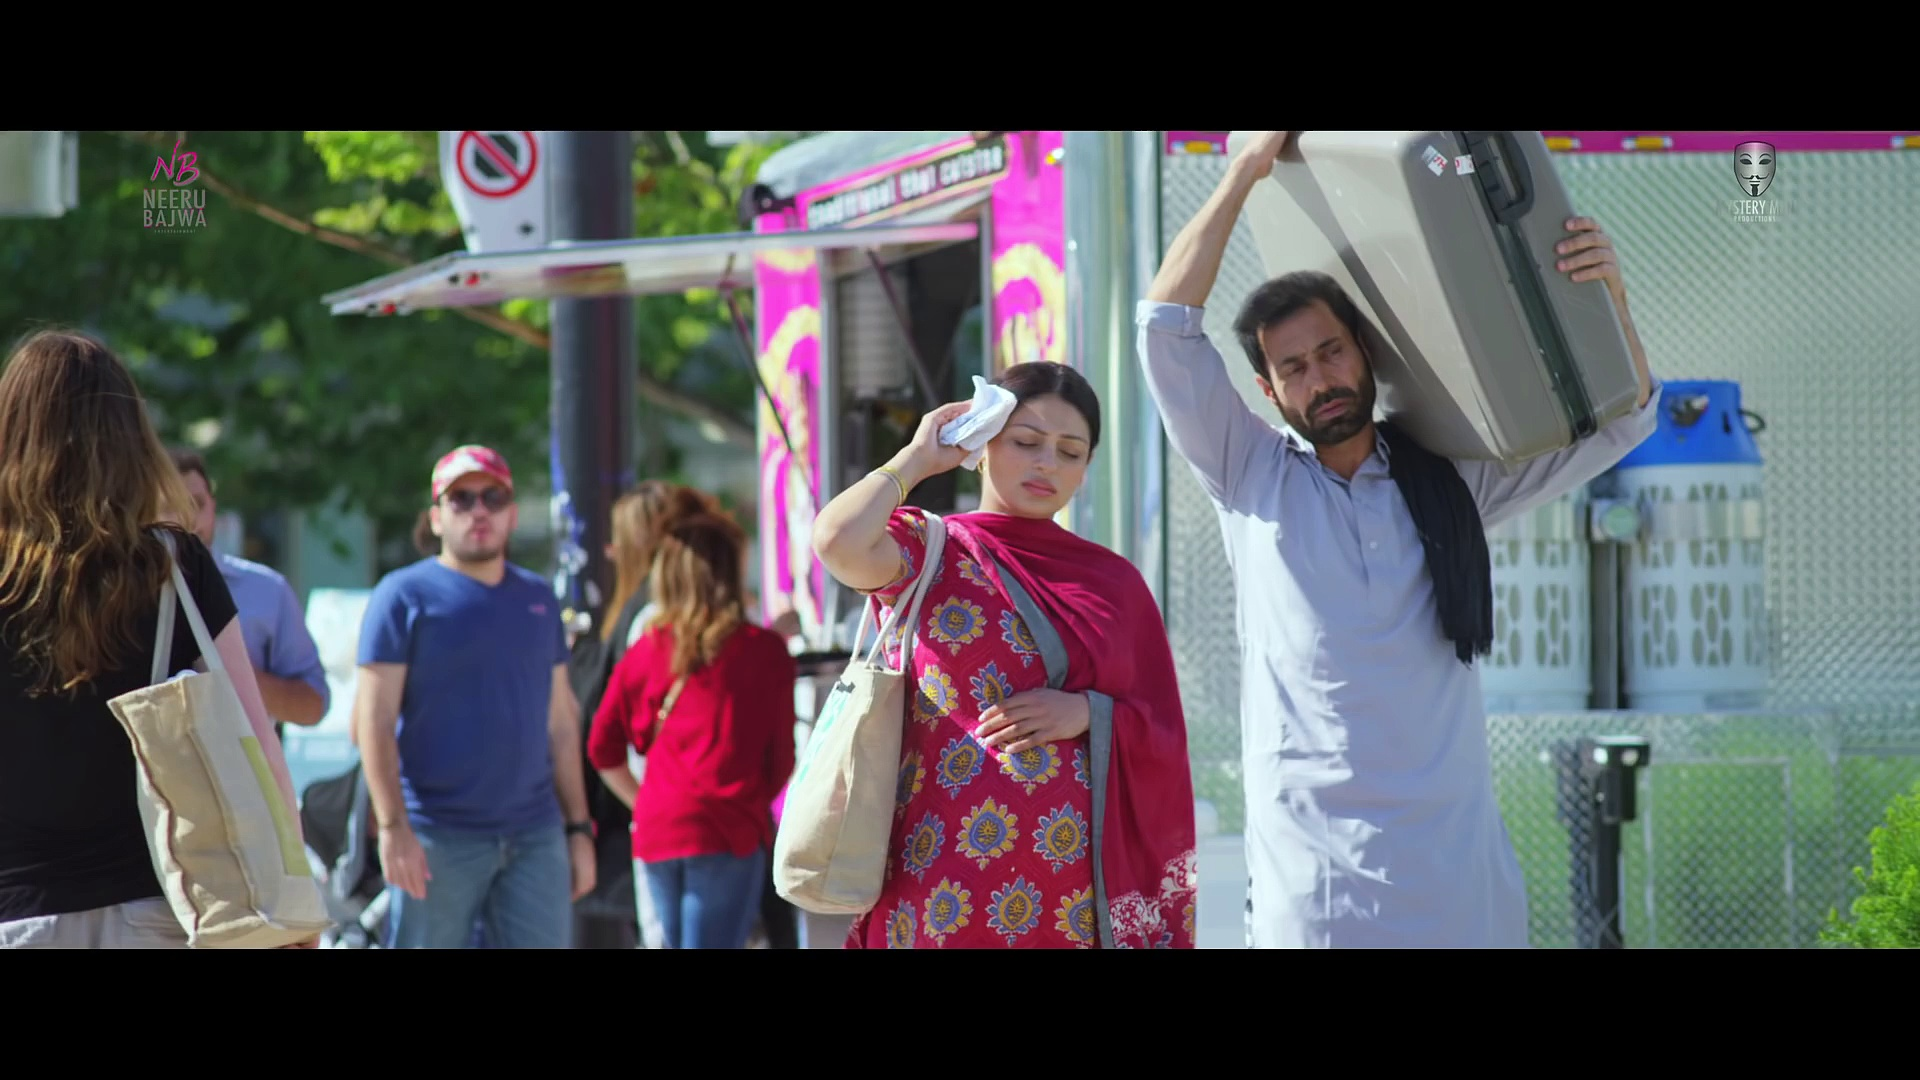 Marjawan-neeru-bajwa-jassi-gill-song-lyrics